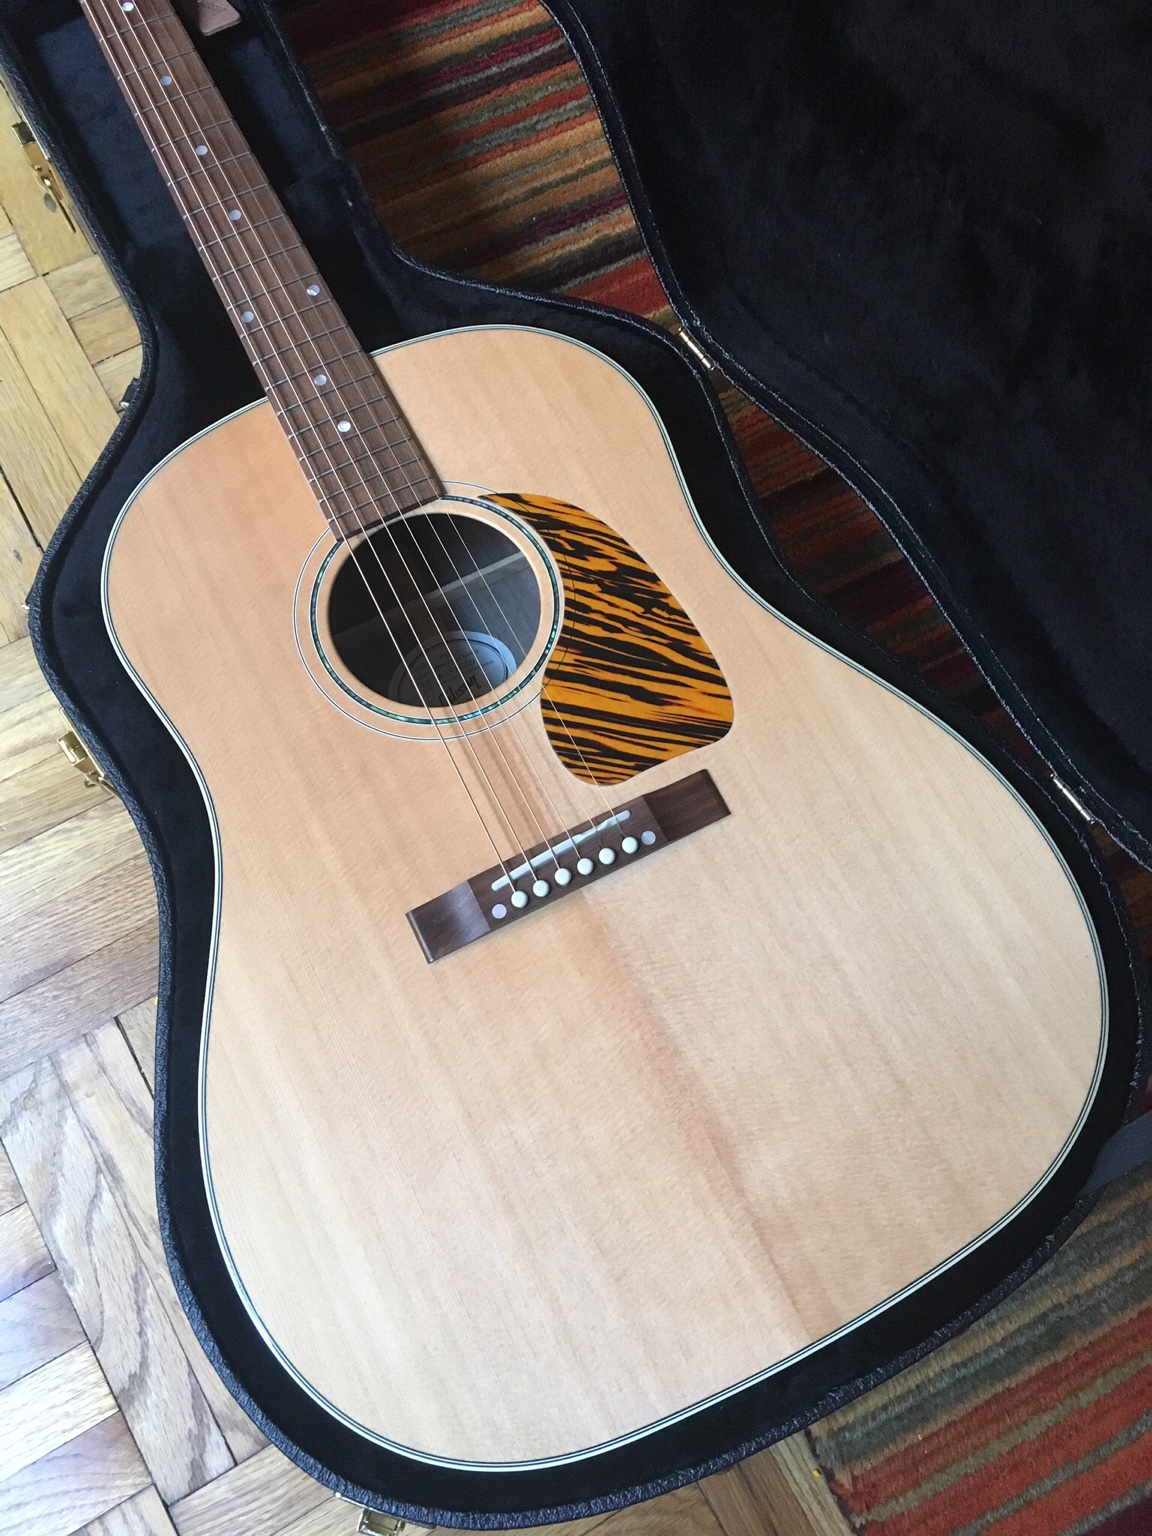 Gibson J15 - Page 2 - The Acoustic Guitar Forum